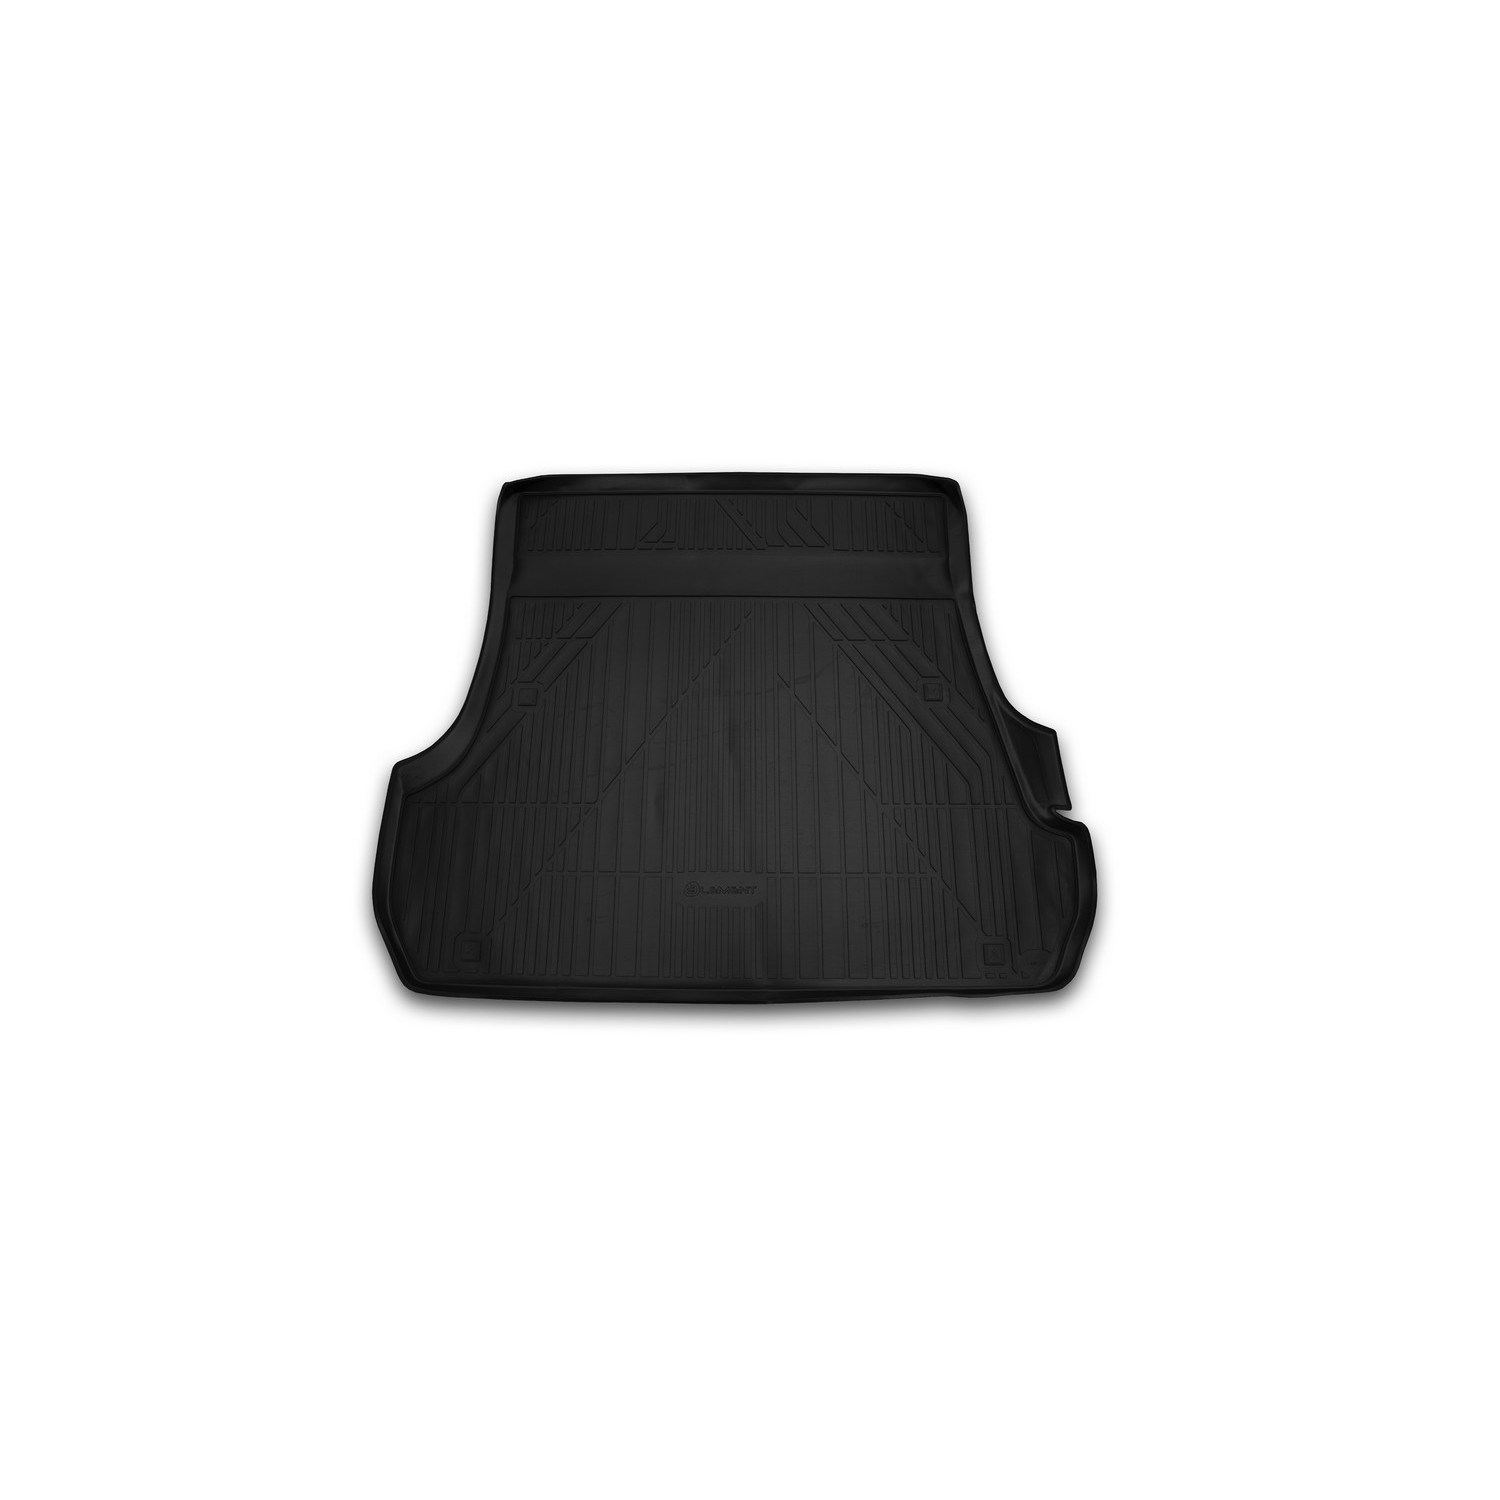 Trunk Mat for TOYOTA Land Cruiser 200 2012 5  implement. 1 PCs CARTYT00010|  - title=